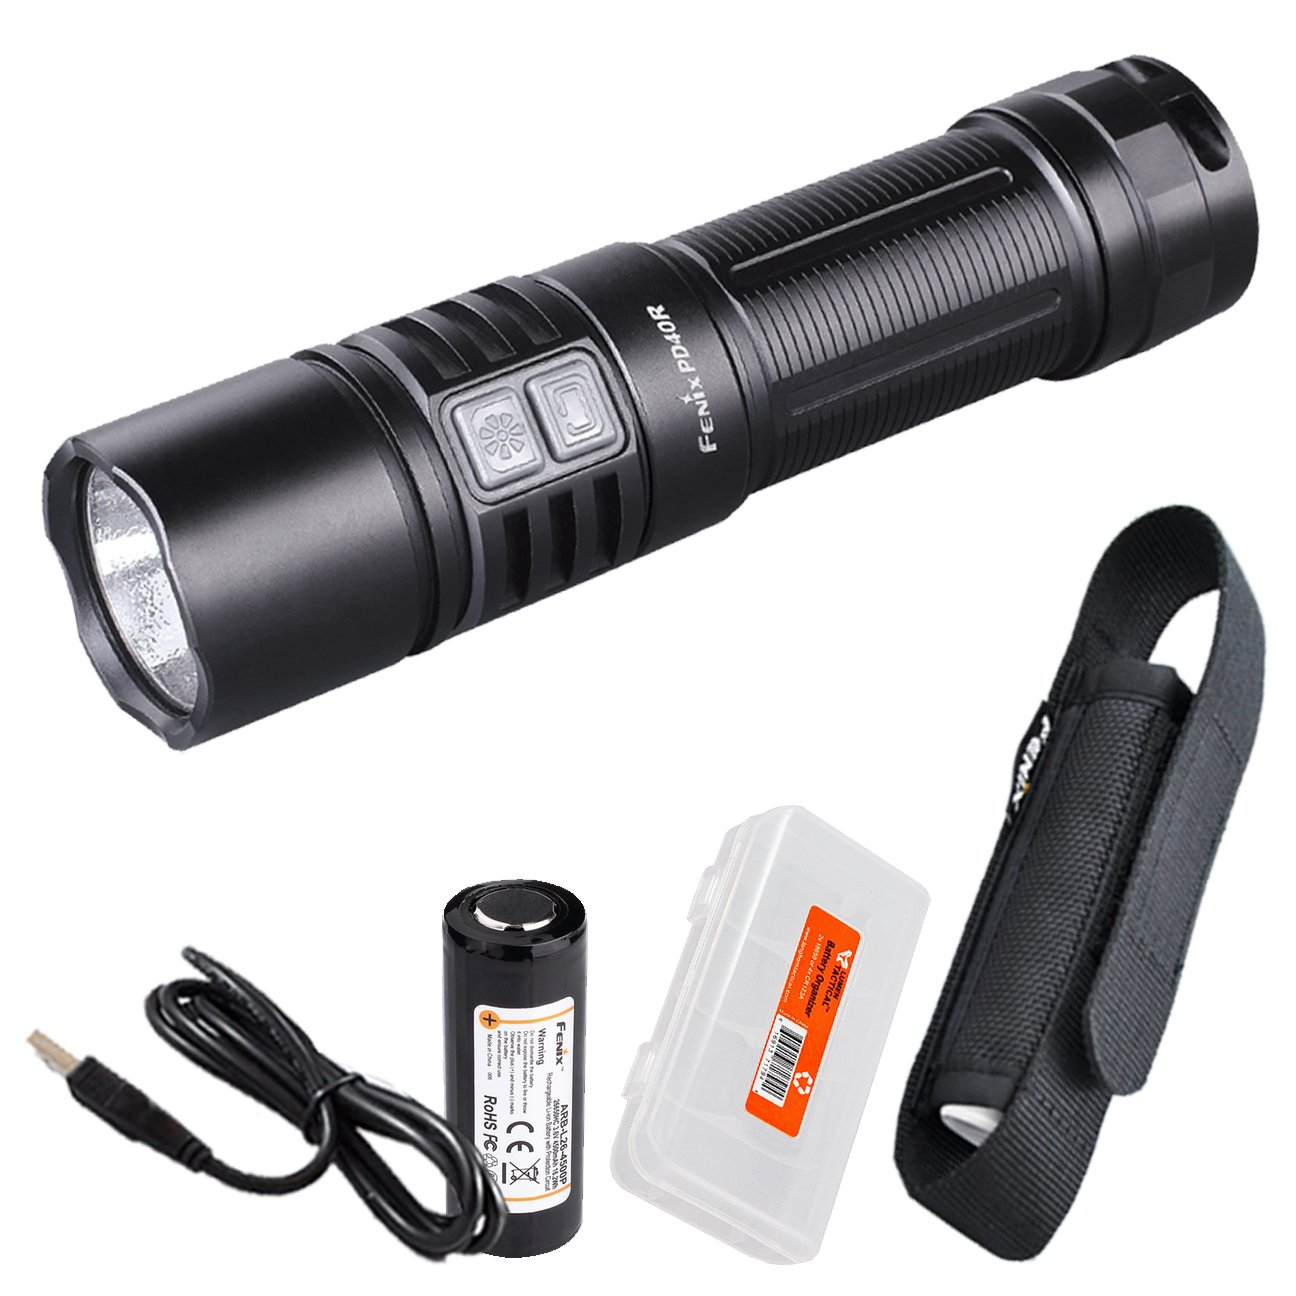 2017 New Version Fenix PD40R 3000 Lumen USB Rechargeable LED Tactical Flashlight w/ High Capacity 4500 mAh 26650 Battery and LumenTac Battery Organizer